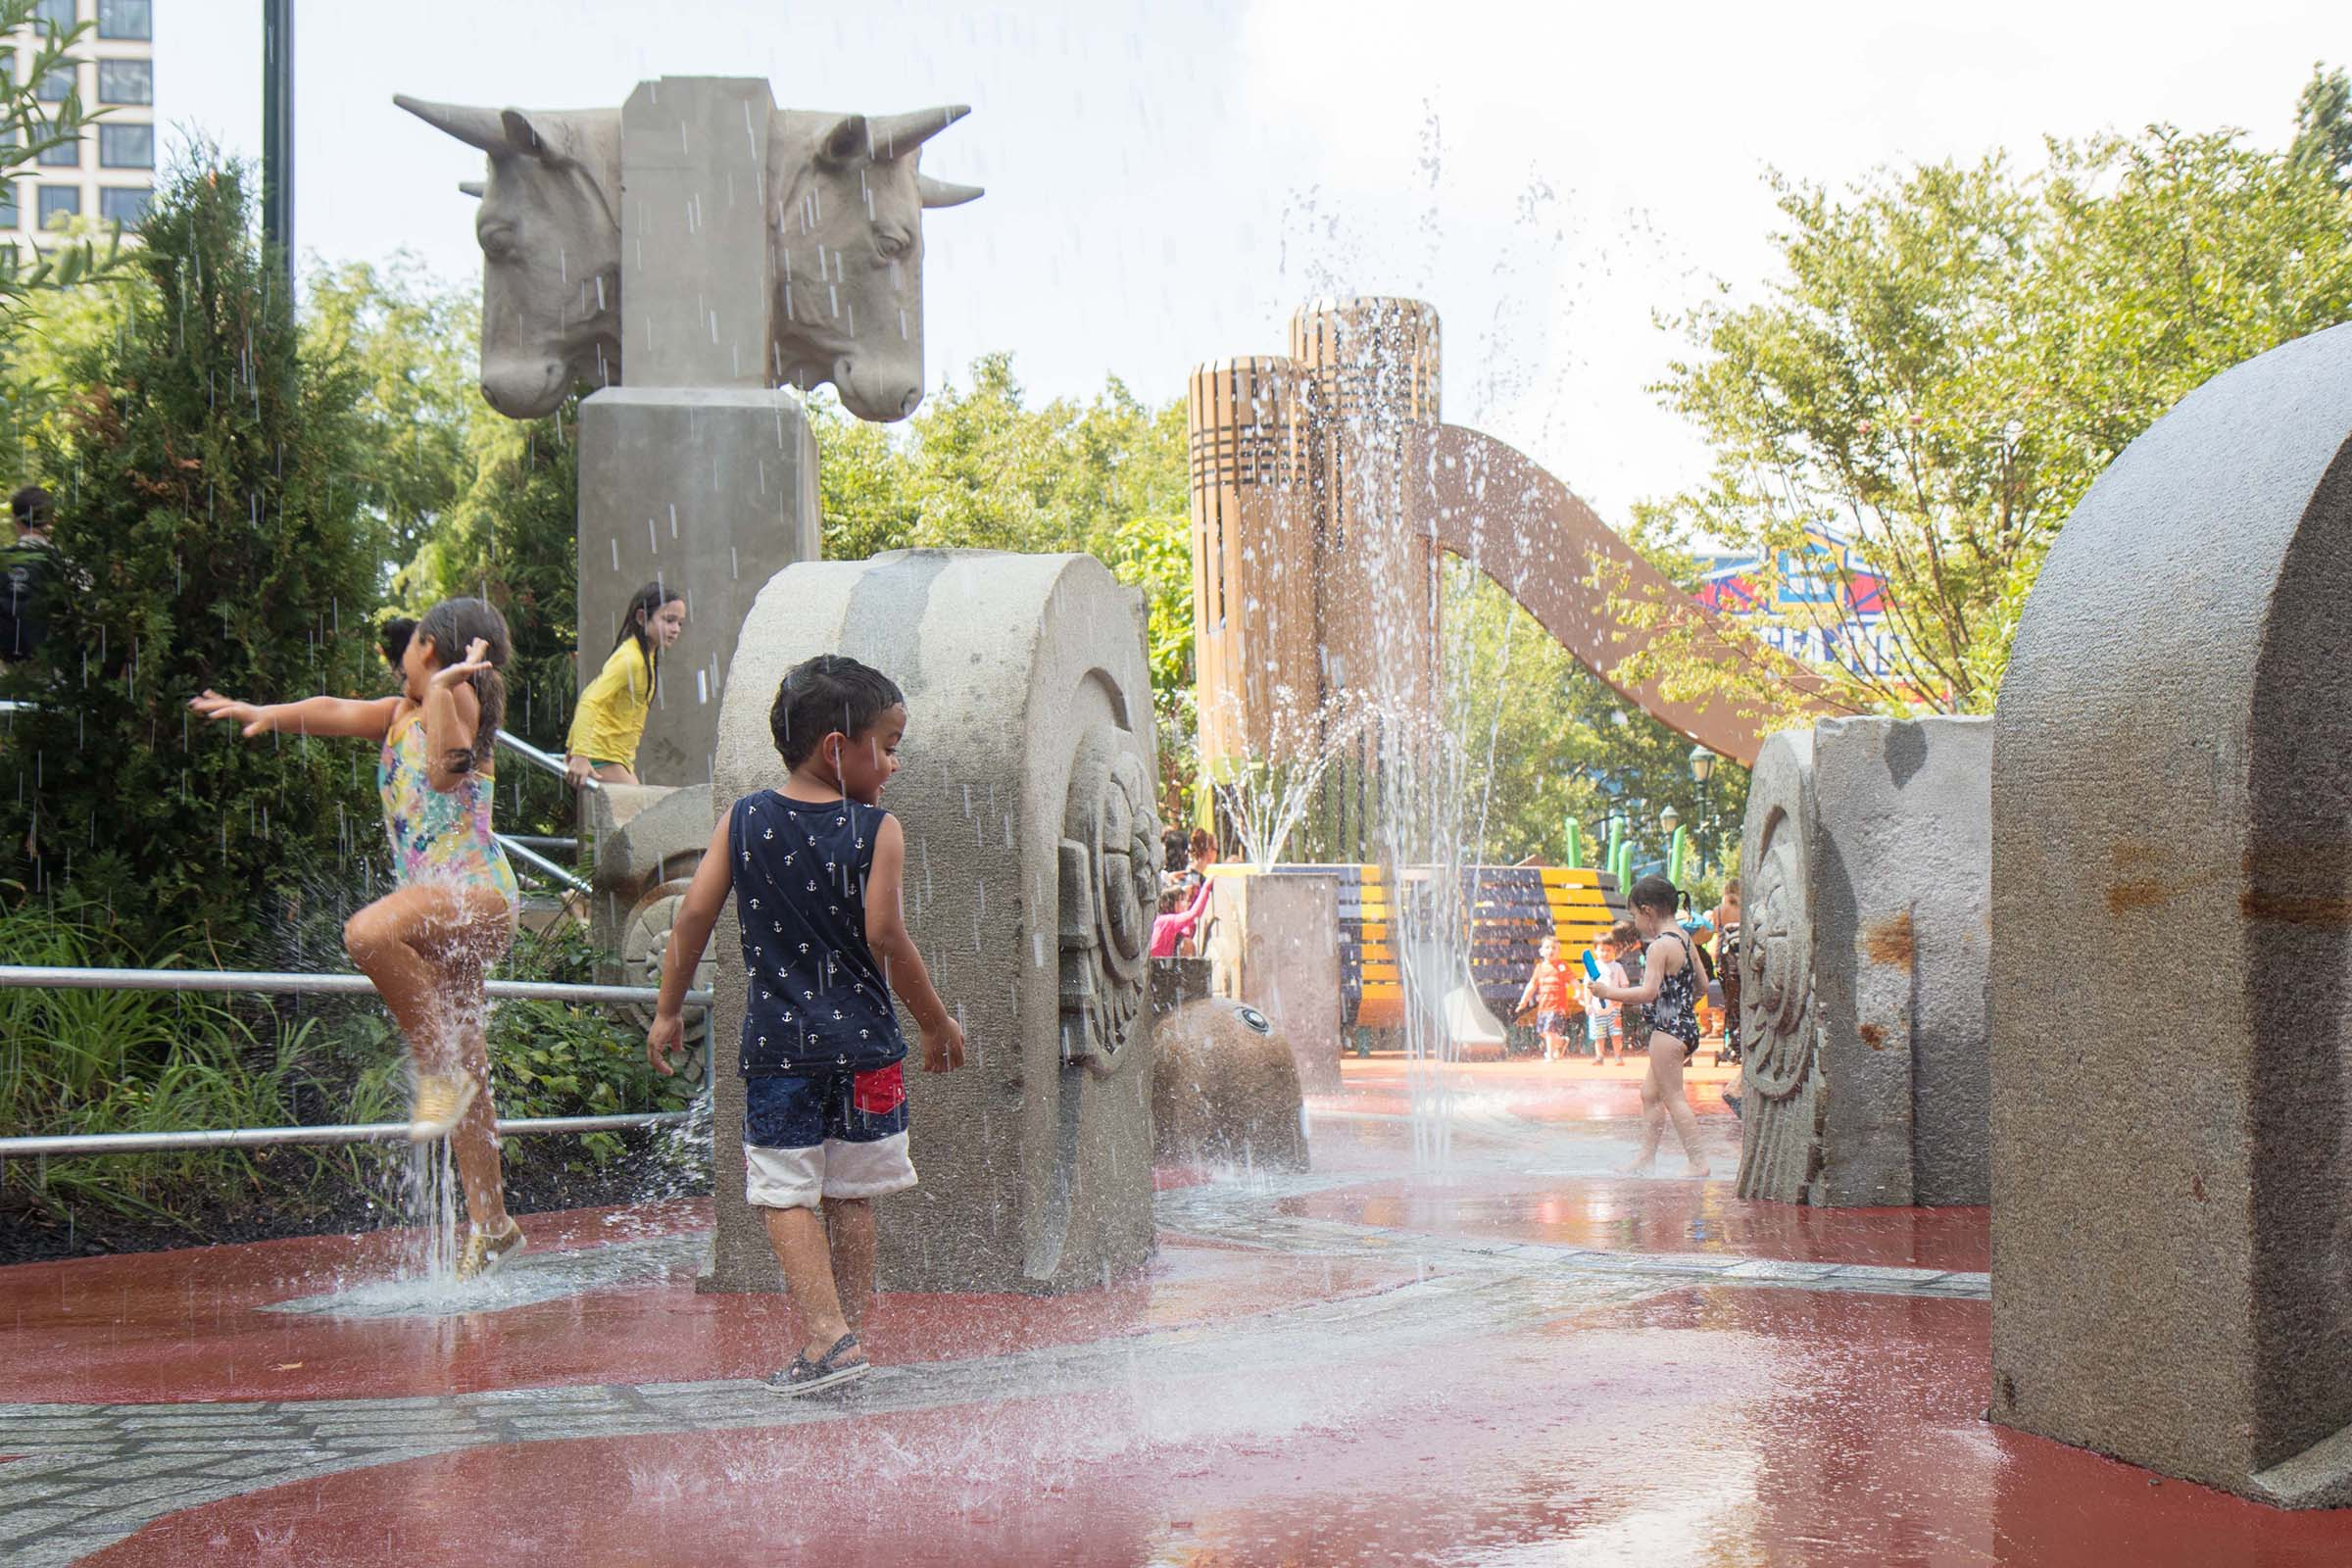 Kids play in the water area at Chelsea Waterside Playground